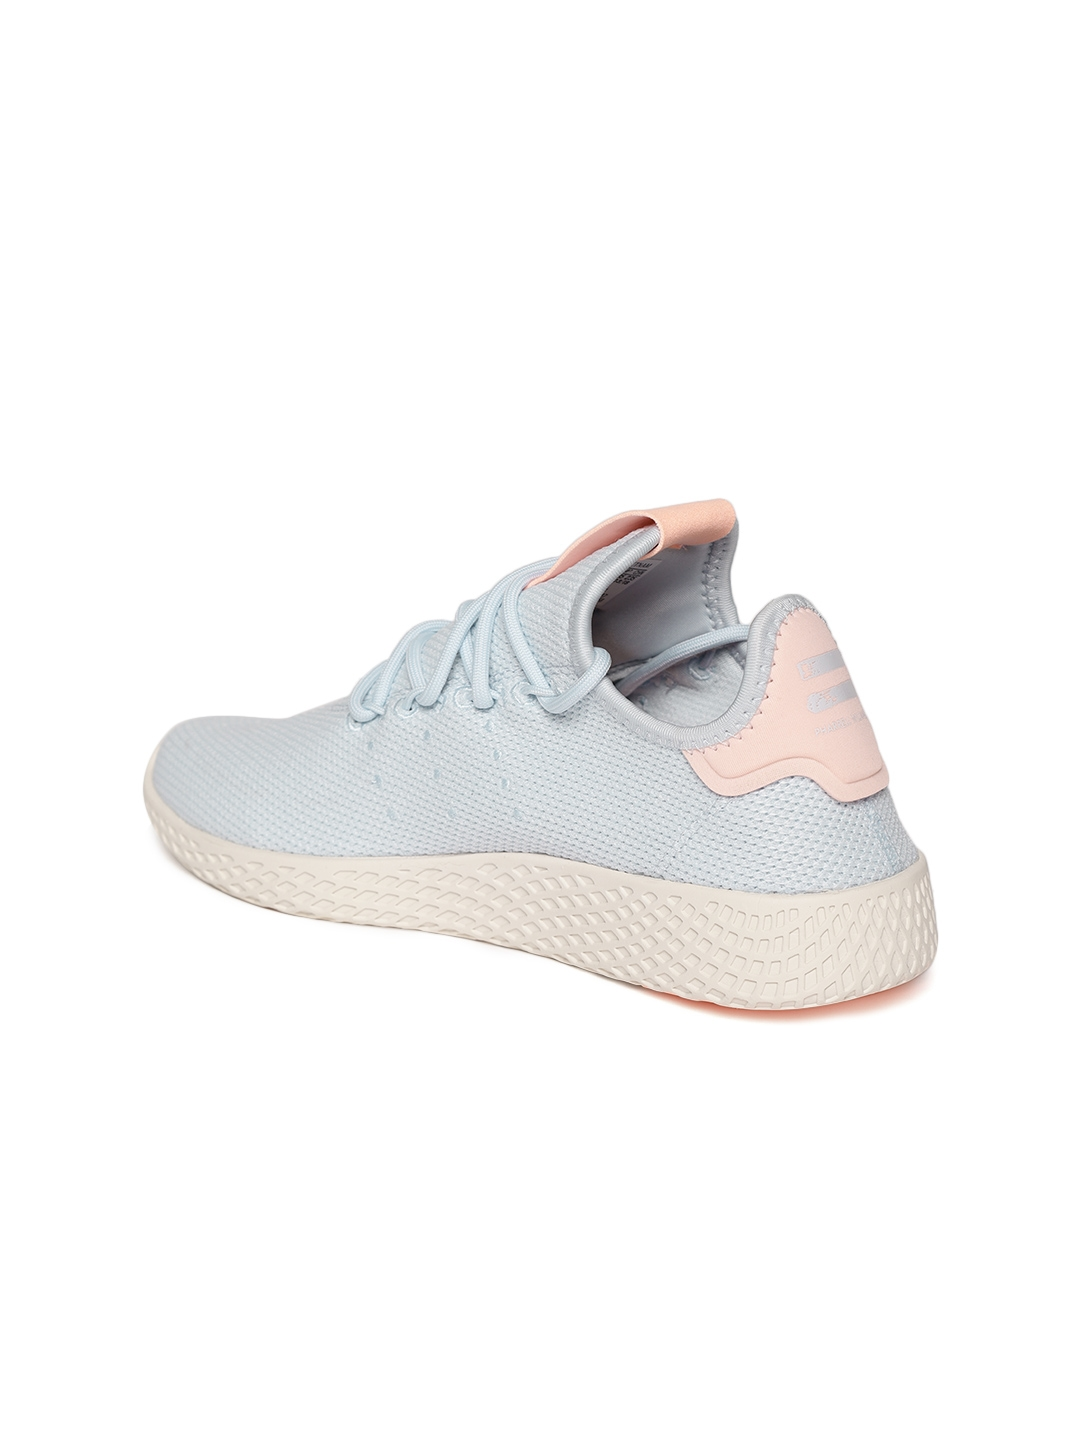 d2acb30eb Buy Adidas Originals Women Blue Pharrell Williams Tennis HU Sneakers ...